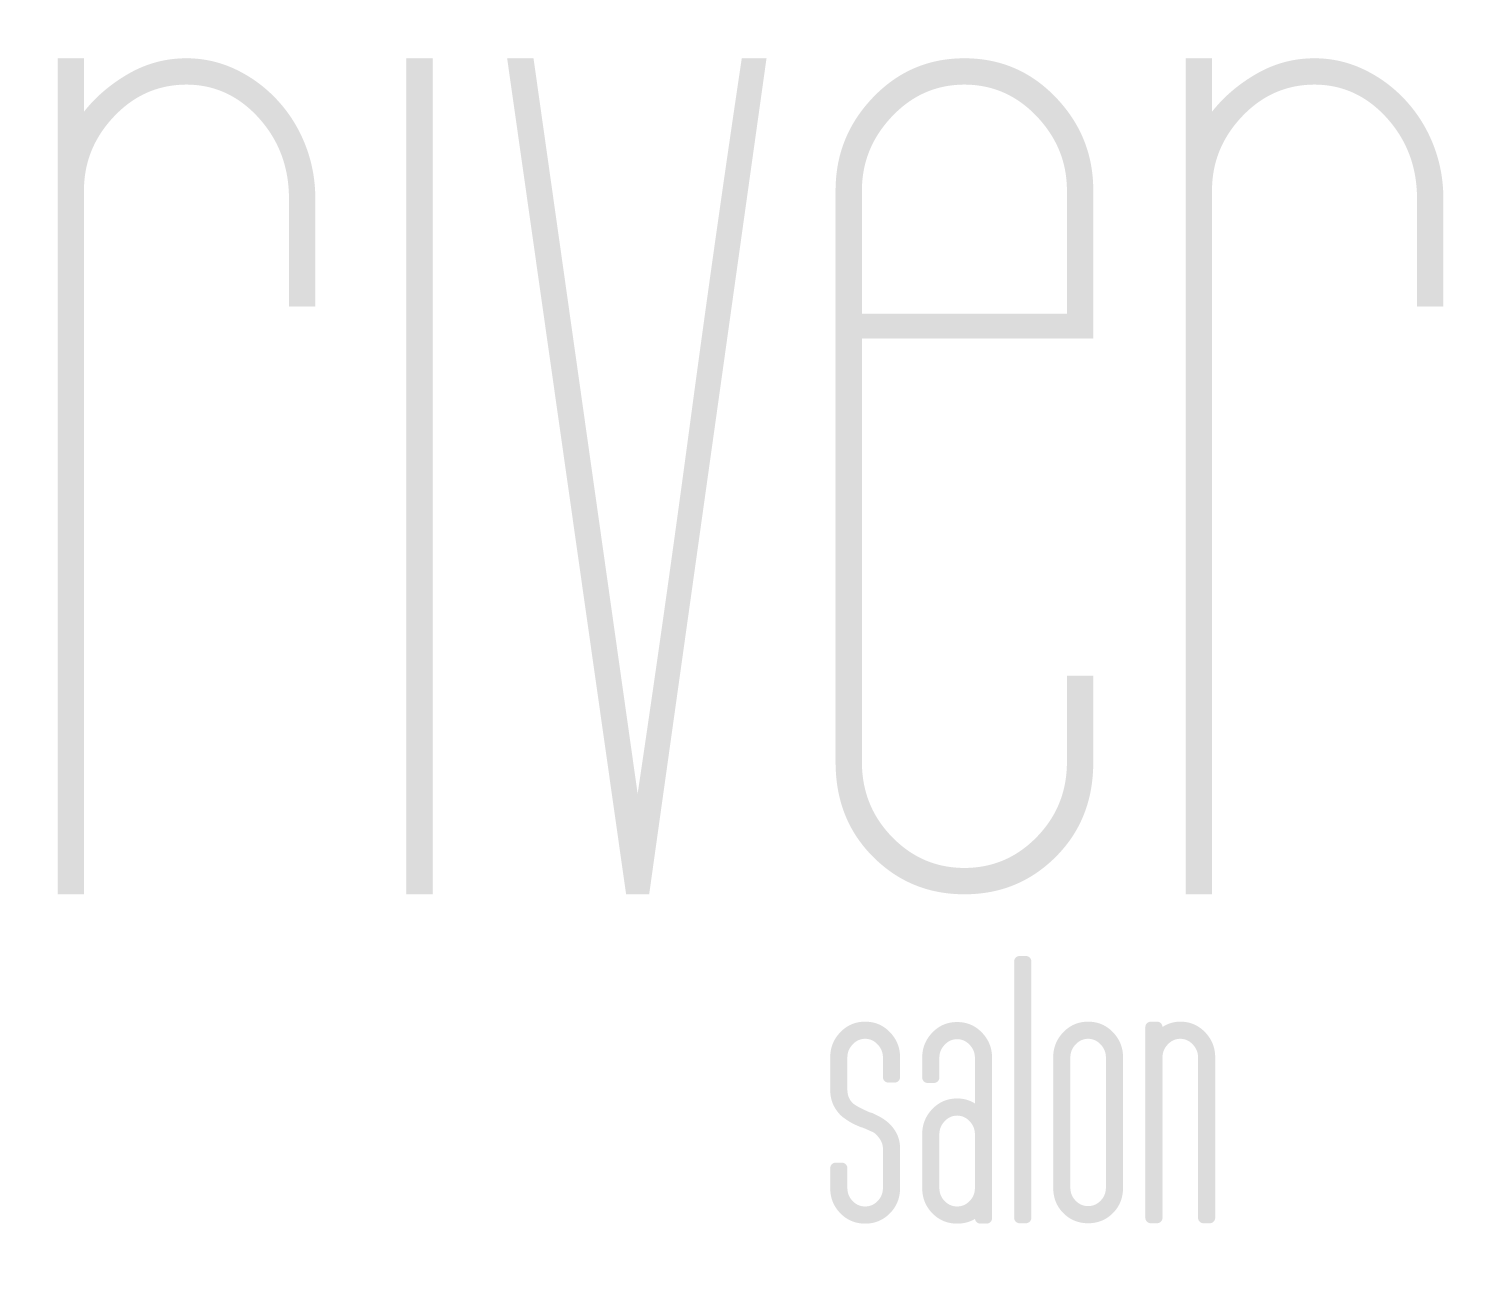 River Salon - A Hair Salon in Gowanus Brooklyn